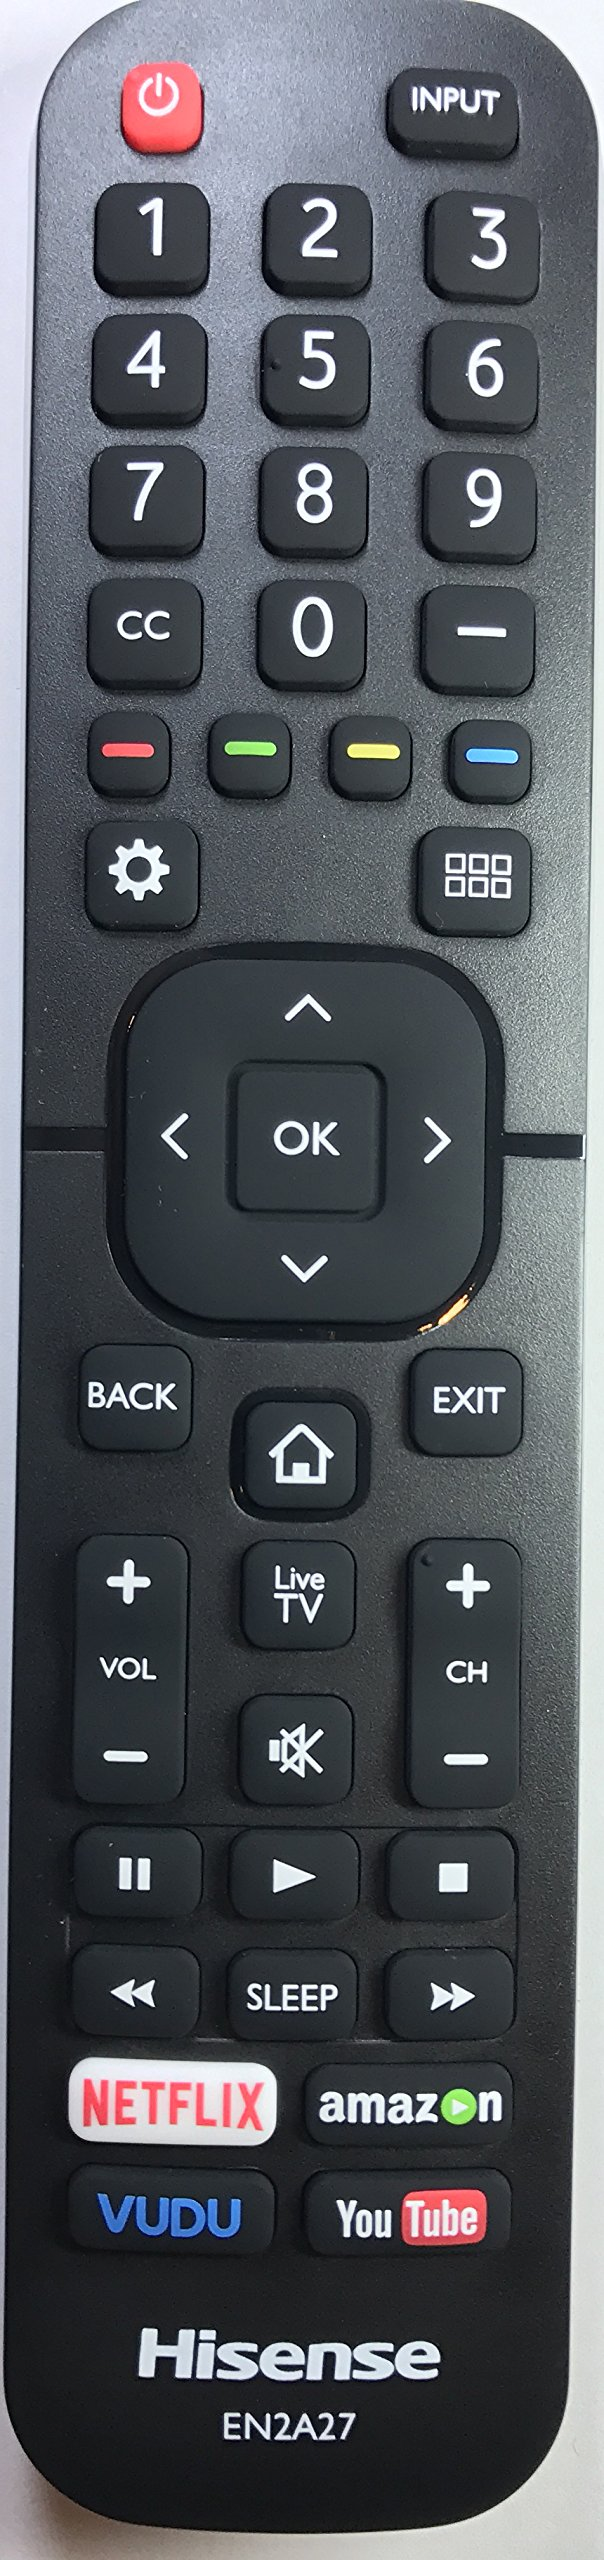 New USARMT EN2A27 (Year 2016) Remote for Hisense H5 Series FHD Smart TV Models Hisense 40H5B 43H5C 50H5C 55H5C by USARMT